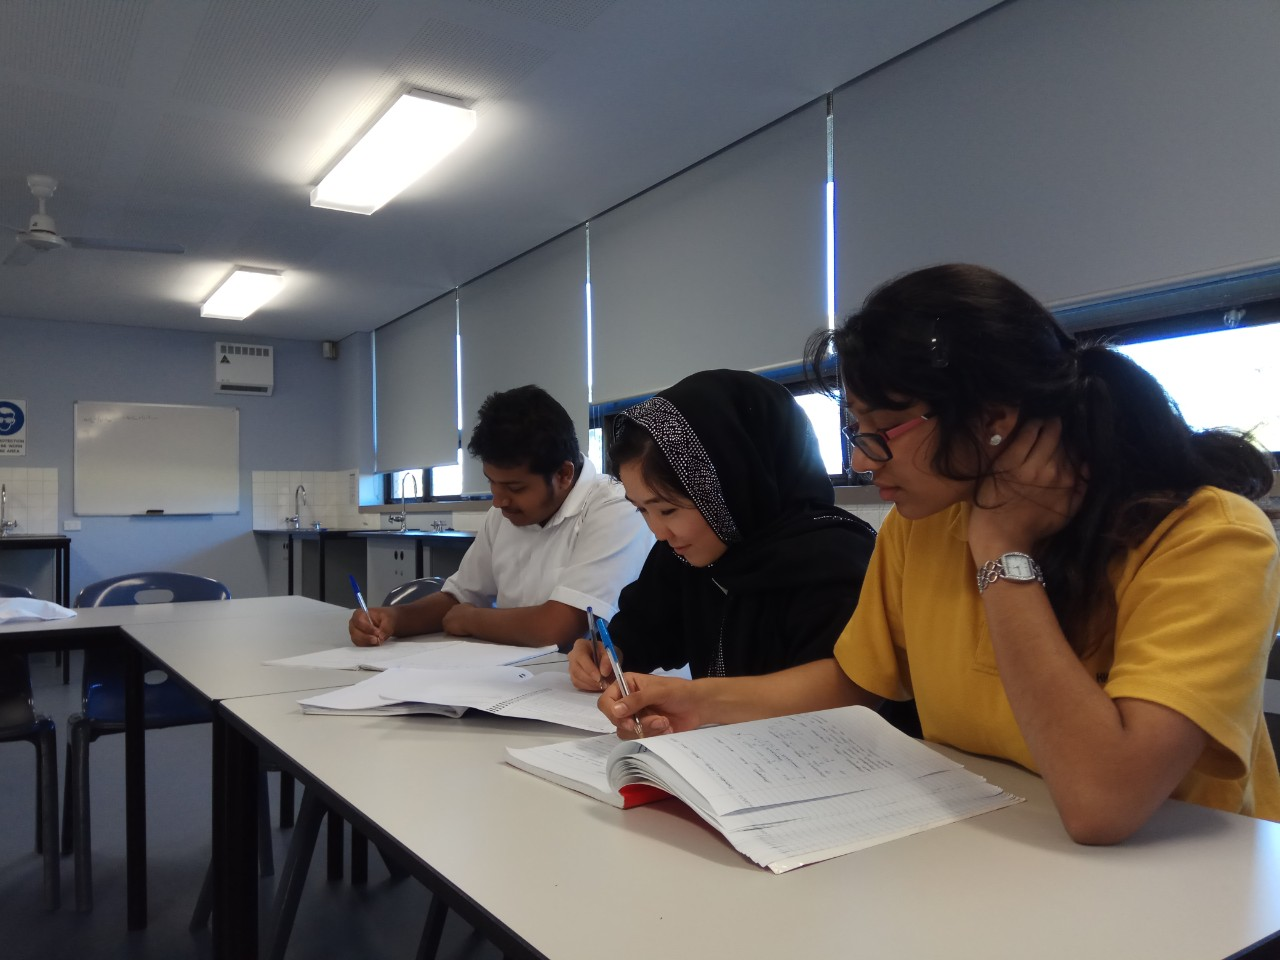 Students studying English as an additional language or dialect.